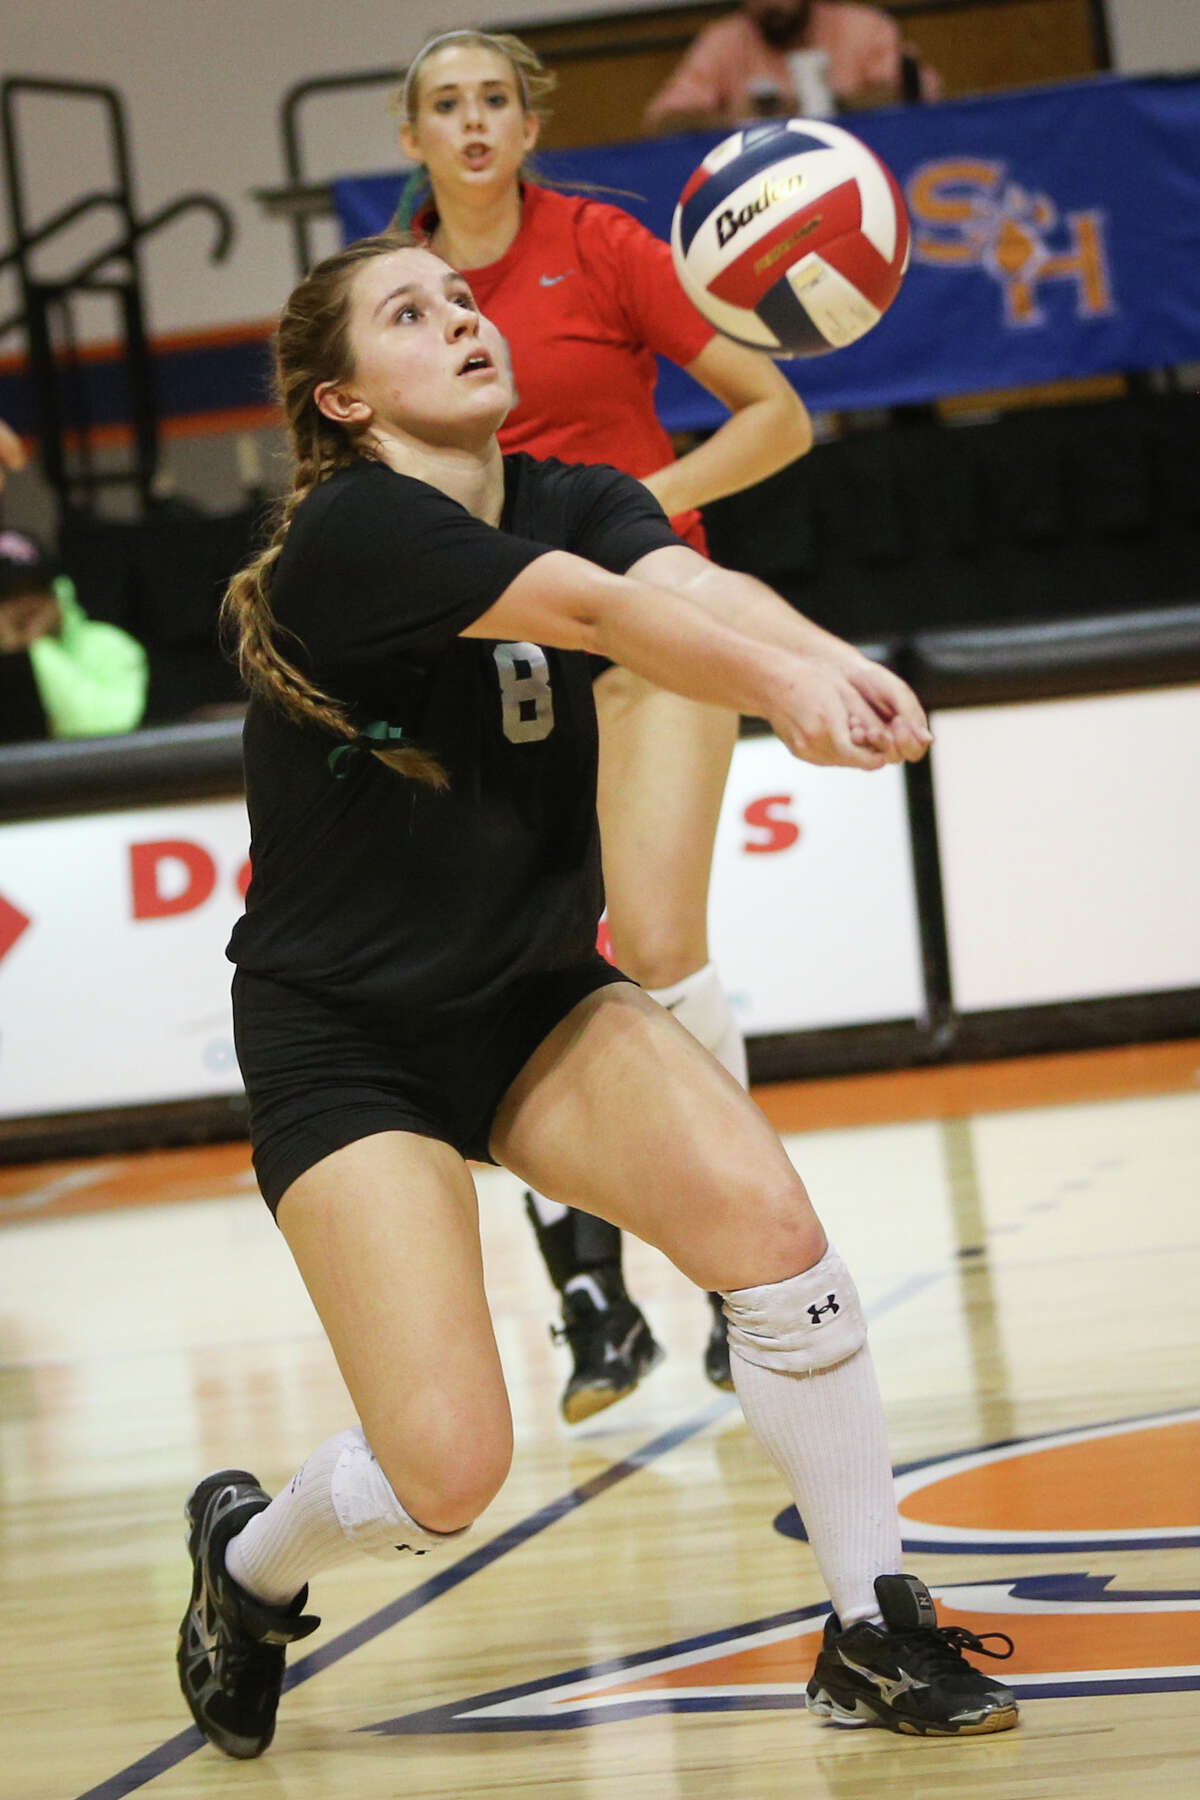 Oak Ridge's Raigen Cianciulli (8) digs the ball during the varsity volleyball game against The Woodlands on Saturday, Nov. 12, 2016, at Johnson Coliseum in Huntsville, Texas. (Michael Minasi / Chronicle)